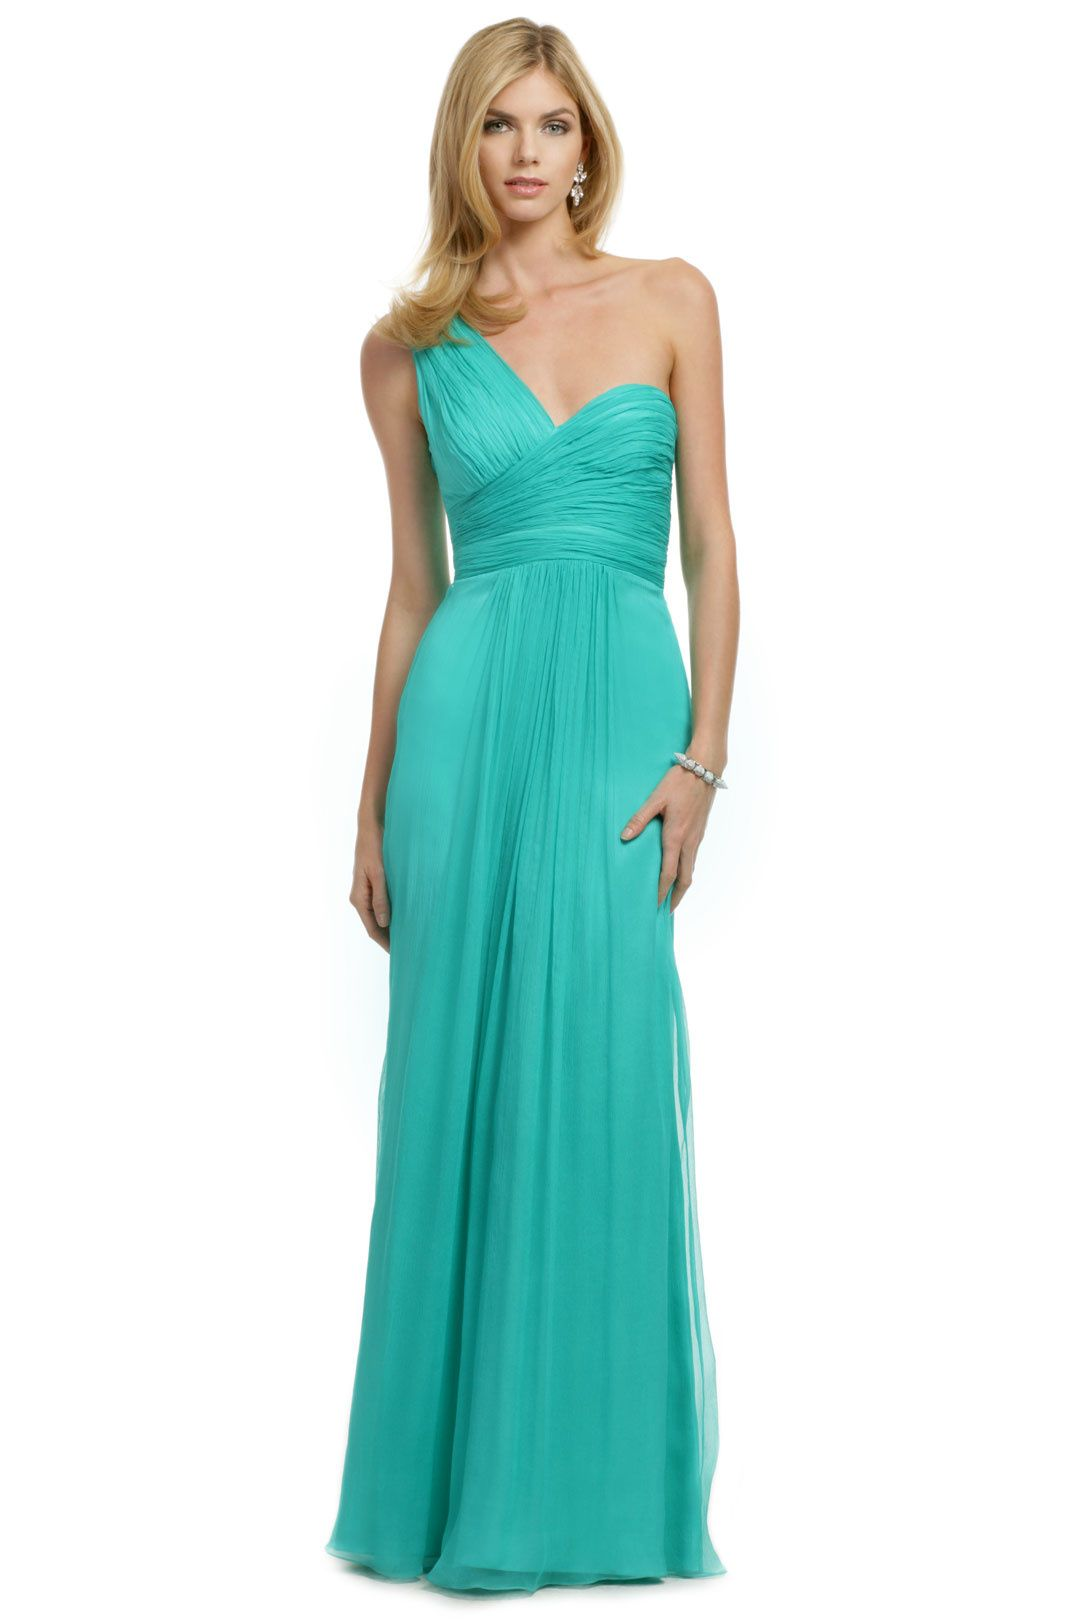 Olinda Ocean Gown | Olinda, Gowns and Dress ideas